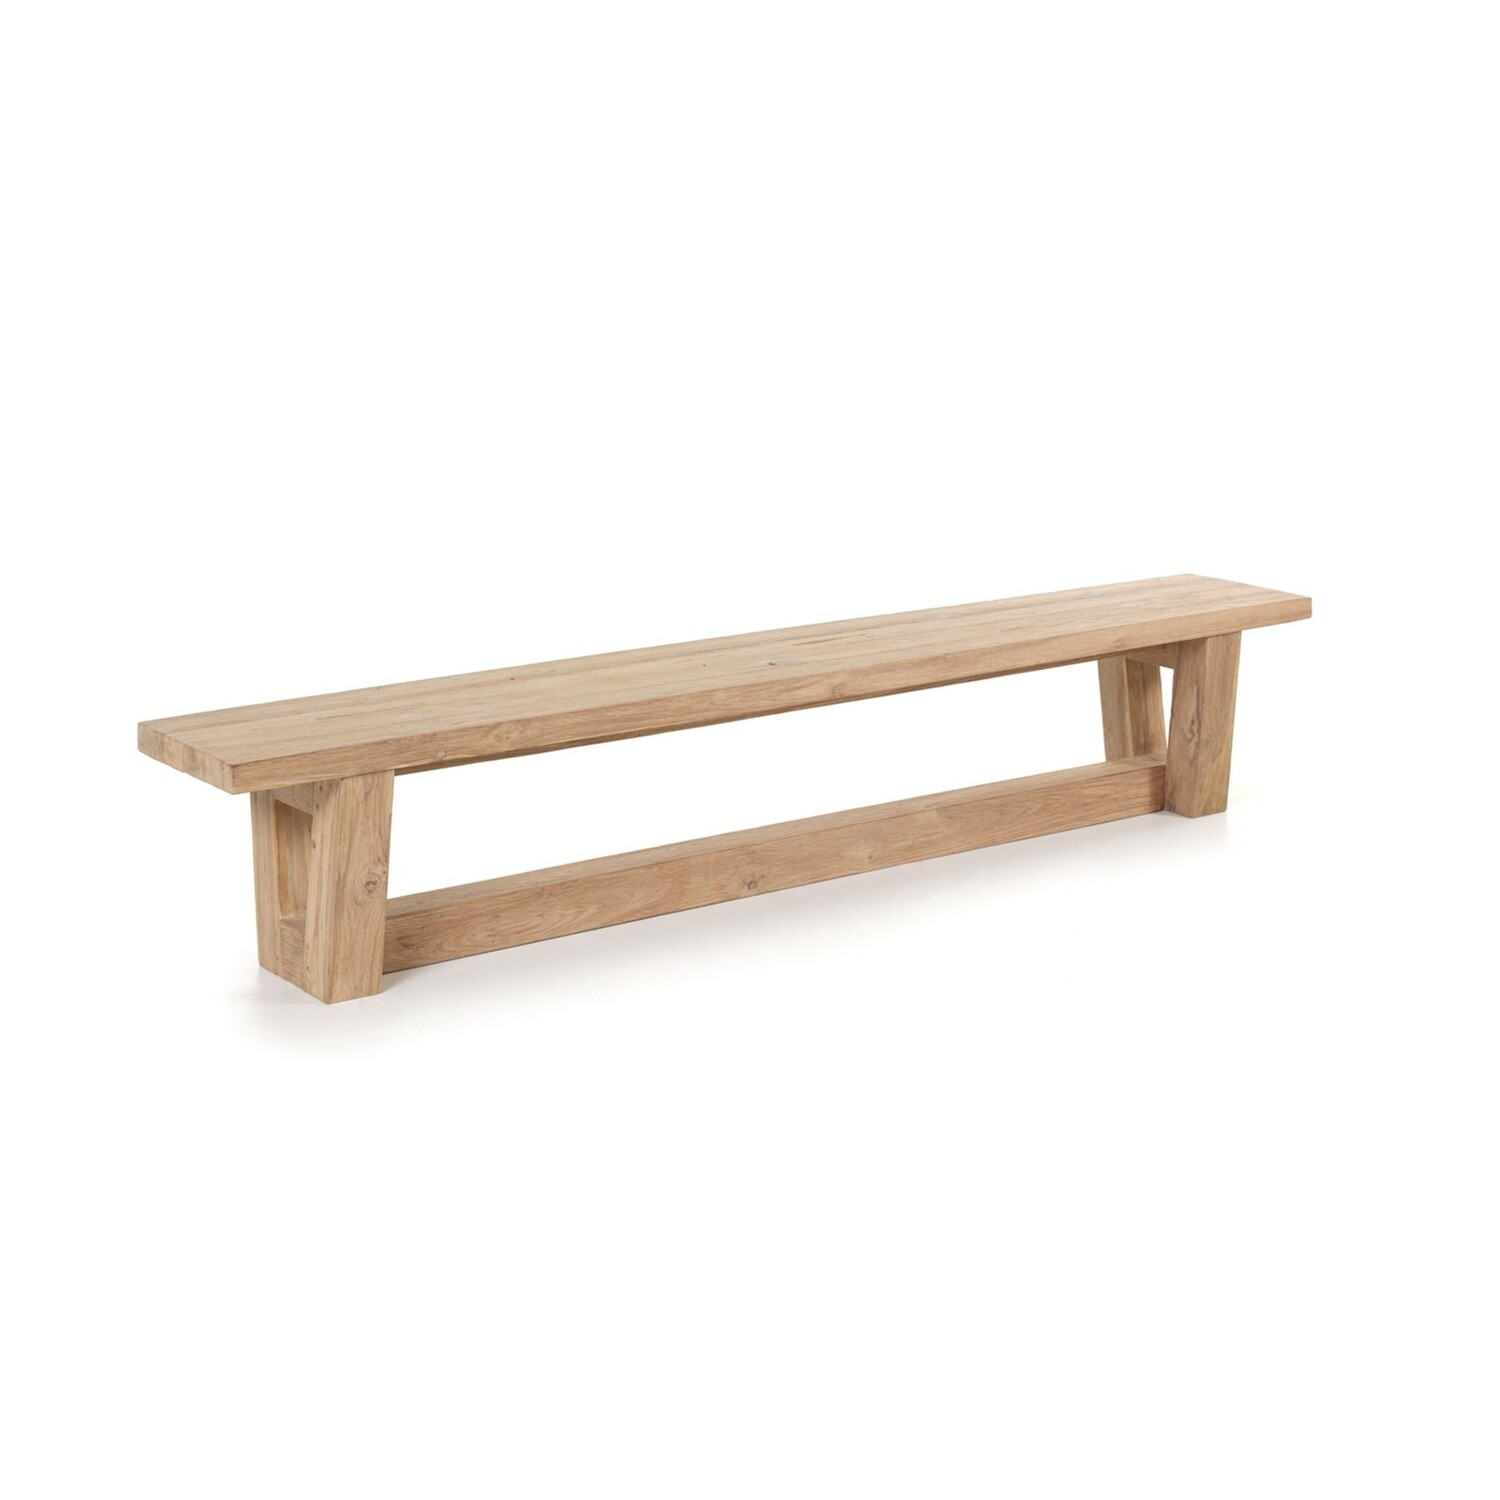 DUNDEE BENCH